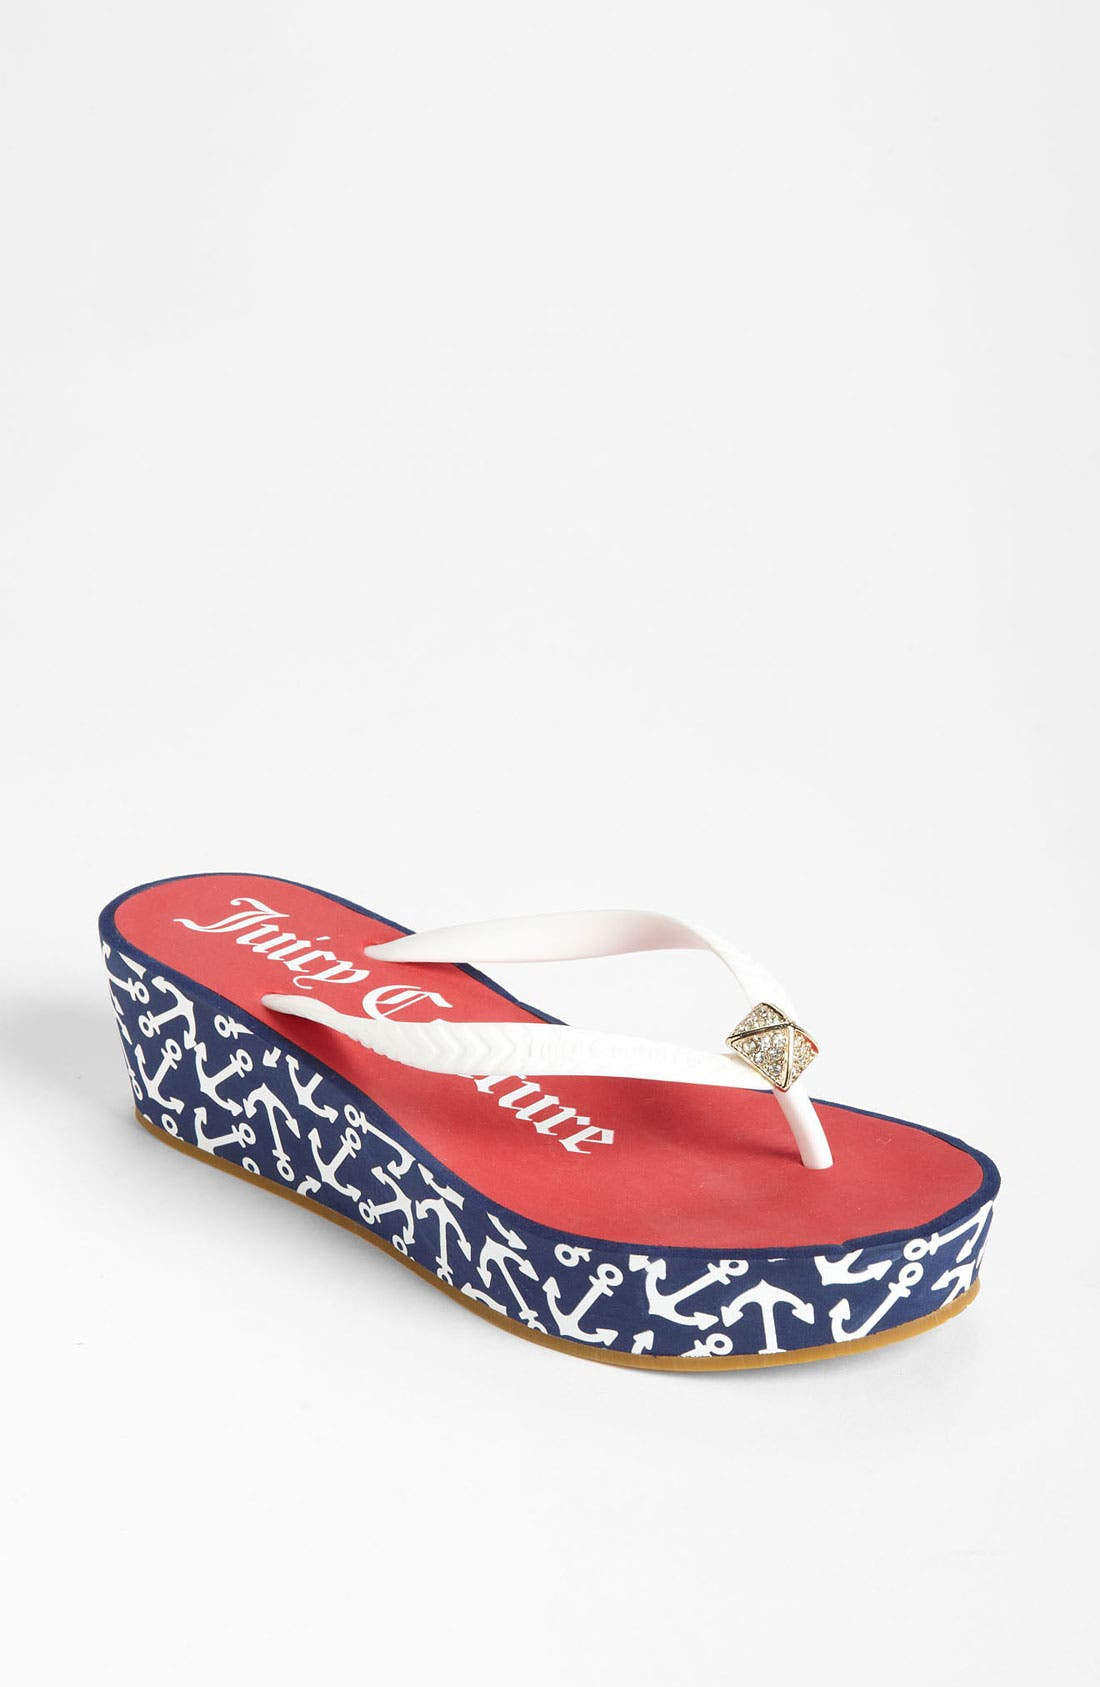 Alternate Image 1 Selected - Juicy Couture 'Irie' Flip Flop